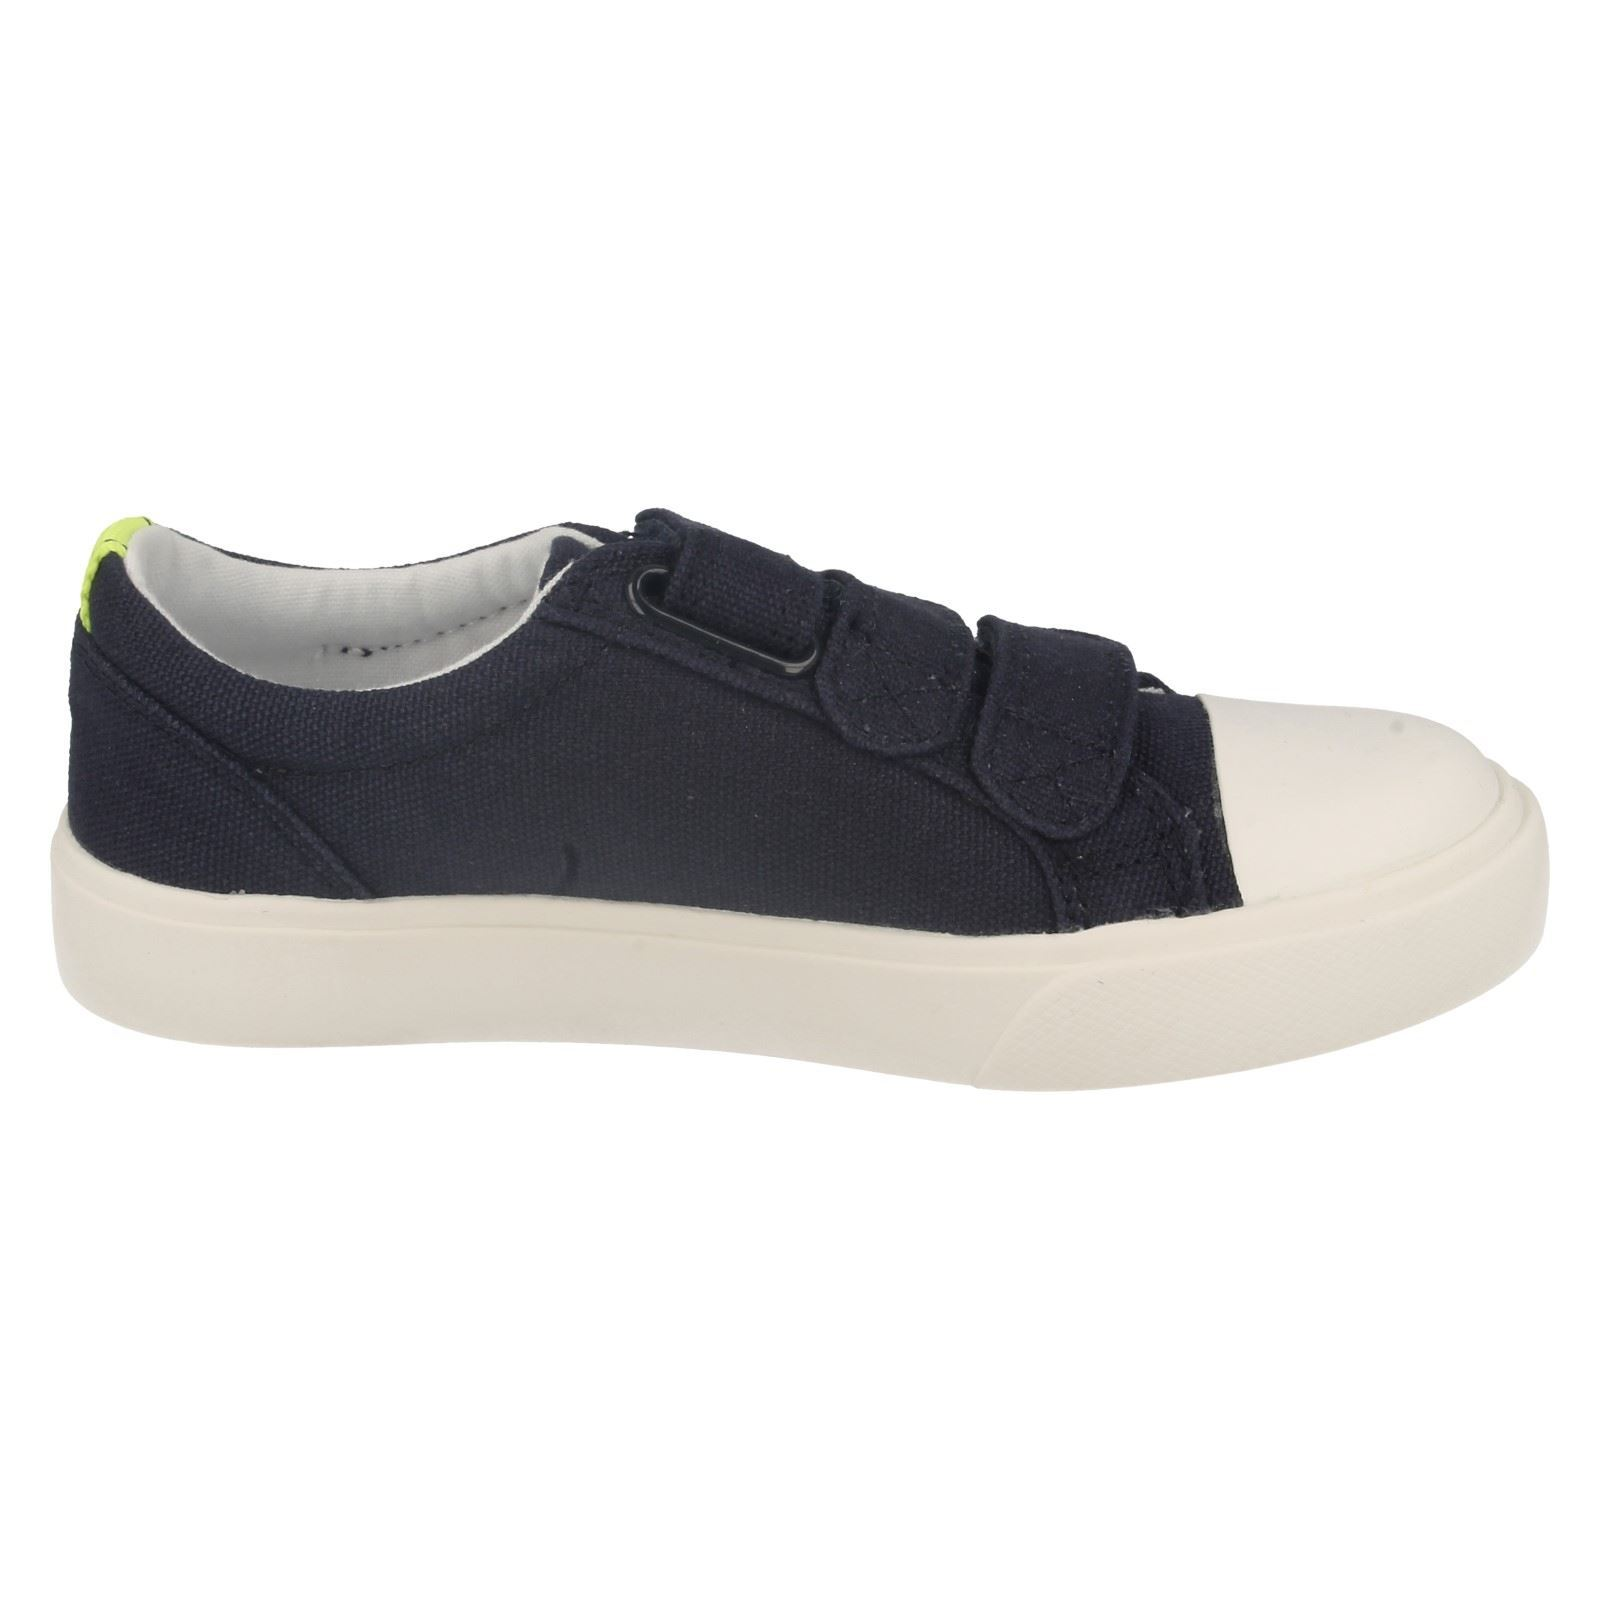 Boys Clarks Sasonal Canvas Summer Shoes Style - Club Halcy